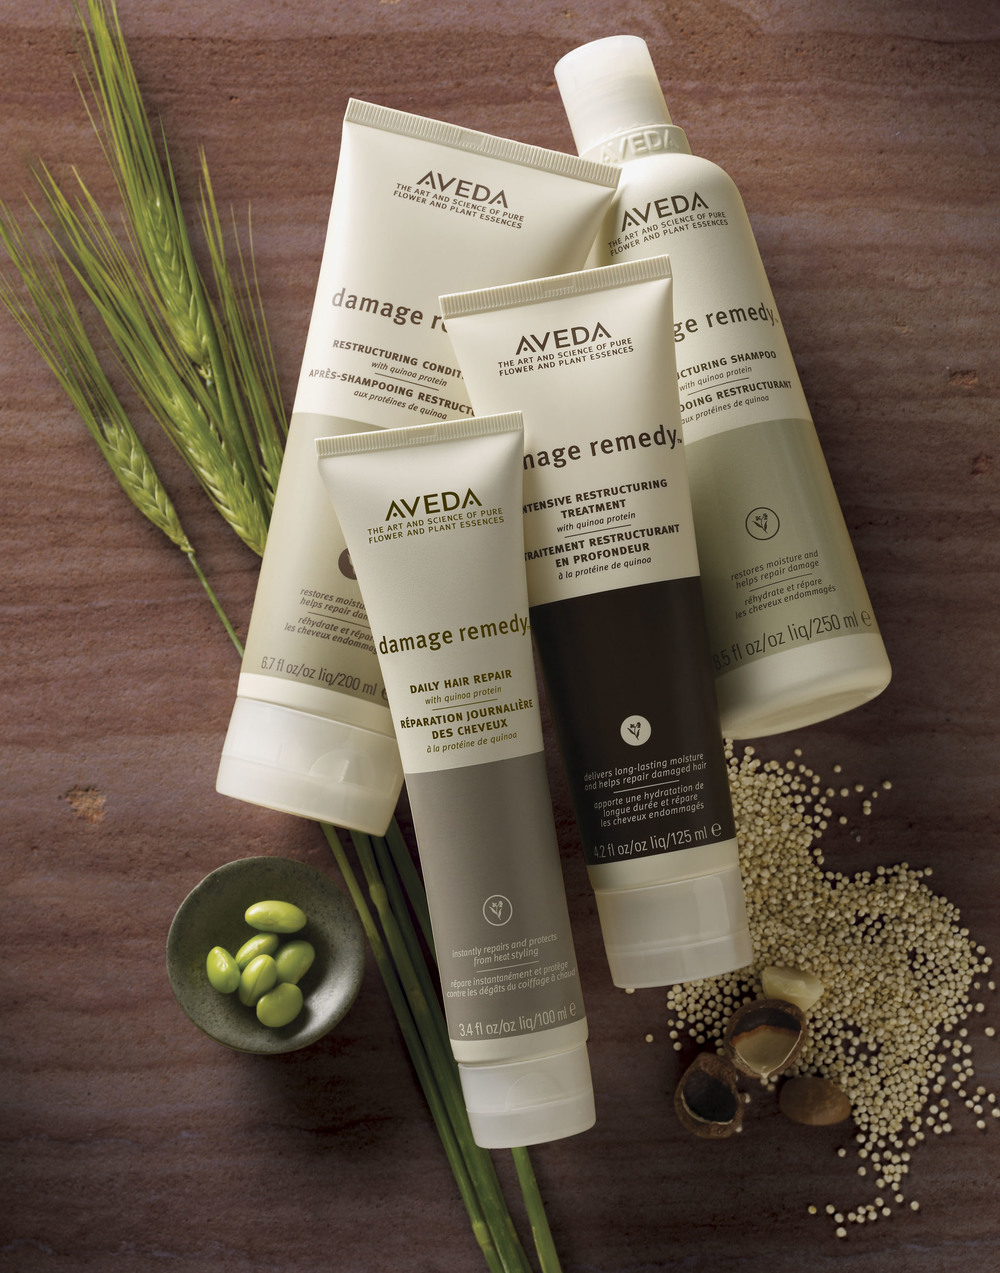 Our mission at Aveda is to care for the world we live in, from the products we make to the ways in which we give back to society. At Aveda, we strive to set an example for environmental leadership and responsibility--not just in the world of beauty, but around the world.  The art and science of pure flower and plant essences is the core of Aveda. Our beauty products are alive with the life force of plants, and contain pure essential oils. Our solutions are so powerful we call them Purescriptions™. While we specialize in hair care, we offer other plant-based products—skin care, makeup, pure-fume™, aromas and lifestyle—that are all professionally developed, clinically tested, and go to exceptional lengths to be respectful of the earth. Ever since a hairdresser founded Aveda in 1978, our products have been harvested with respect for the earth, in harmony with the web of life.